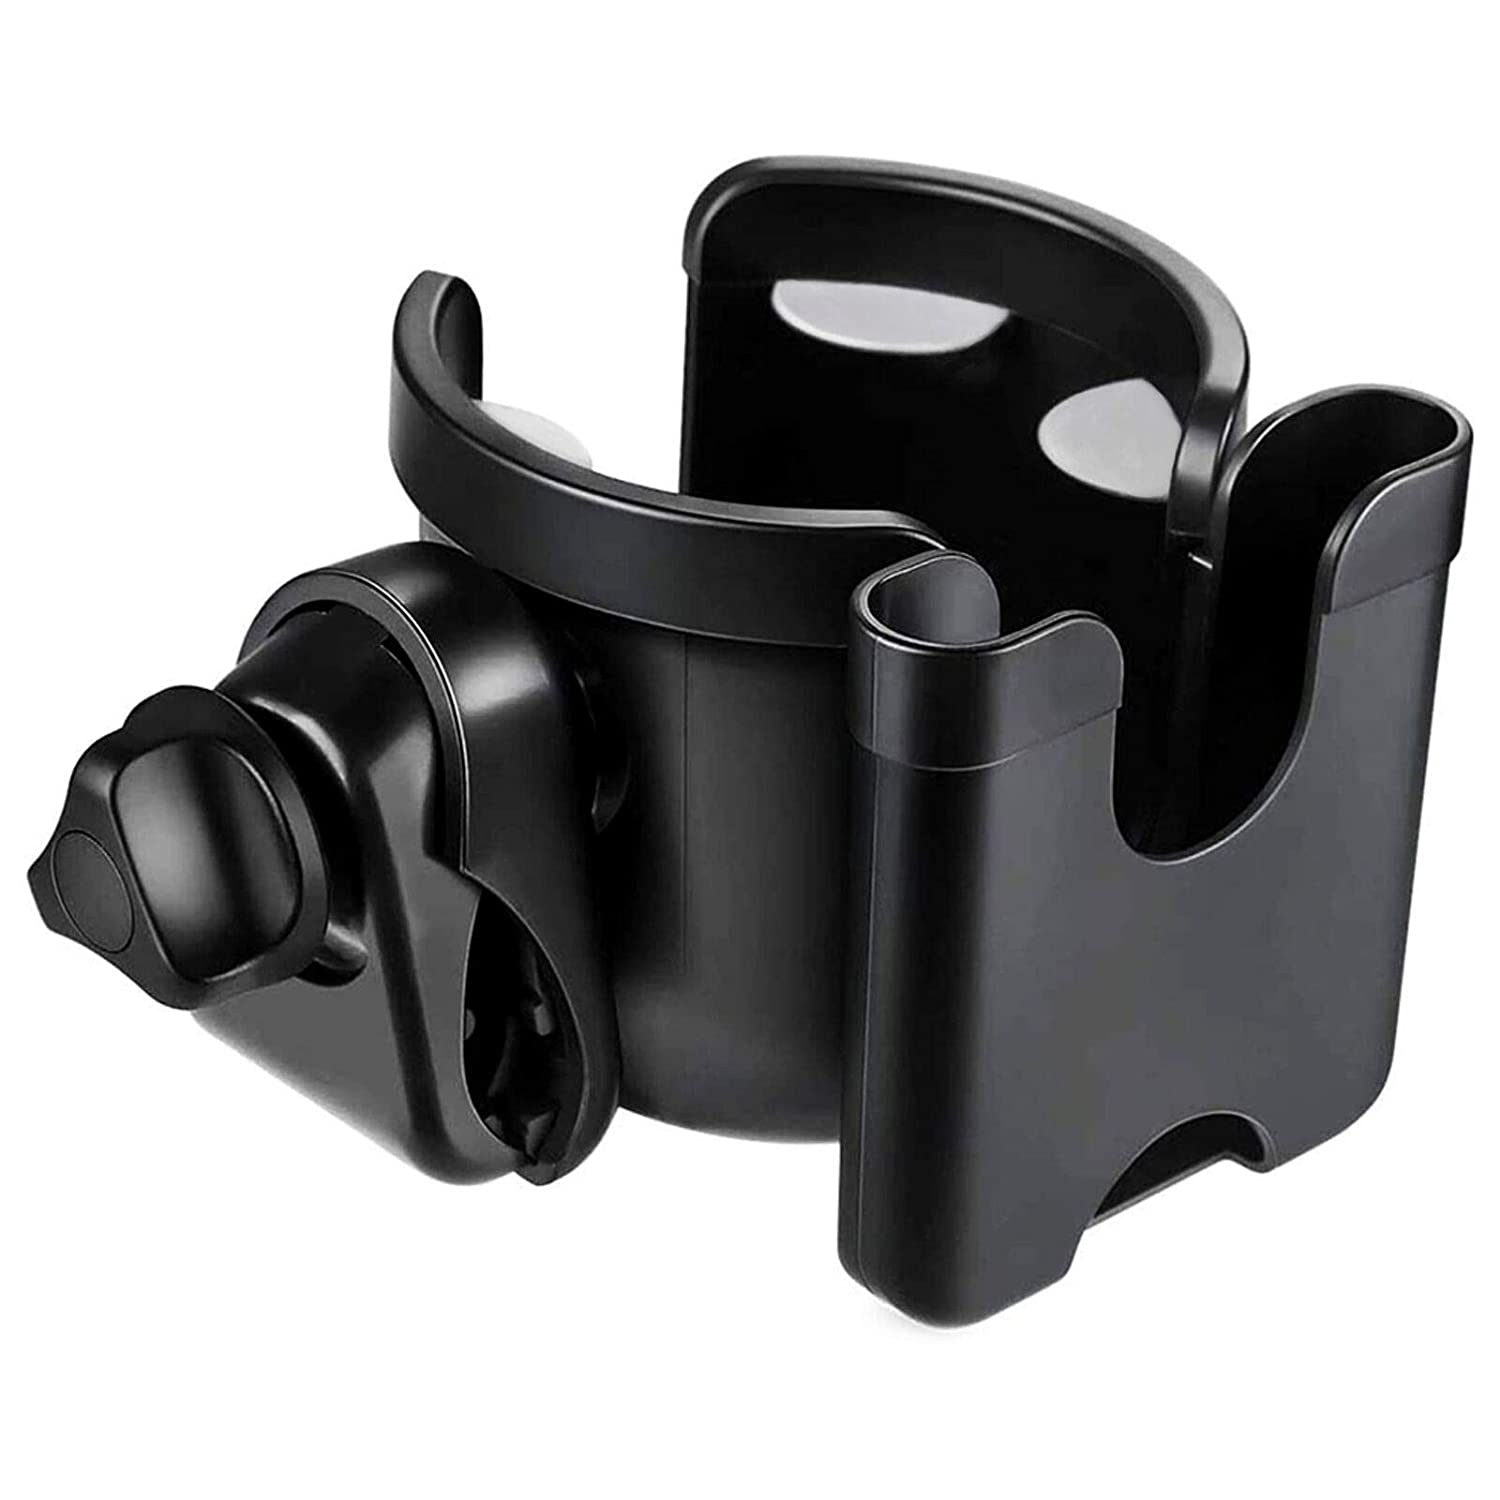 Stroller Cup Holder Strong Sales Bike C Compatibility Price reduction Phone